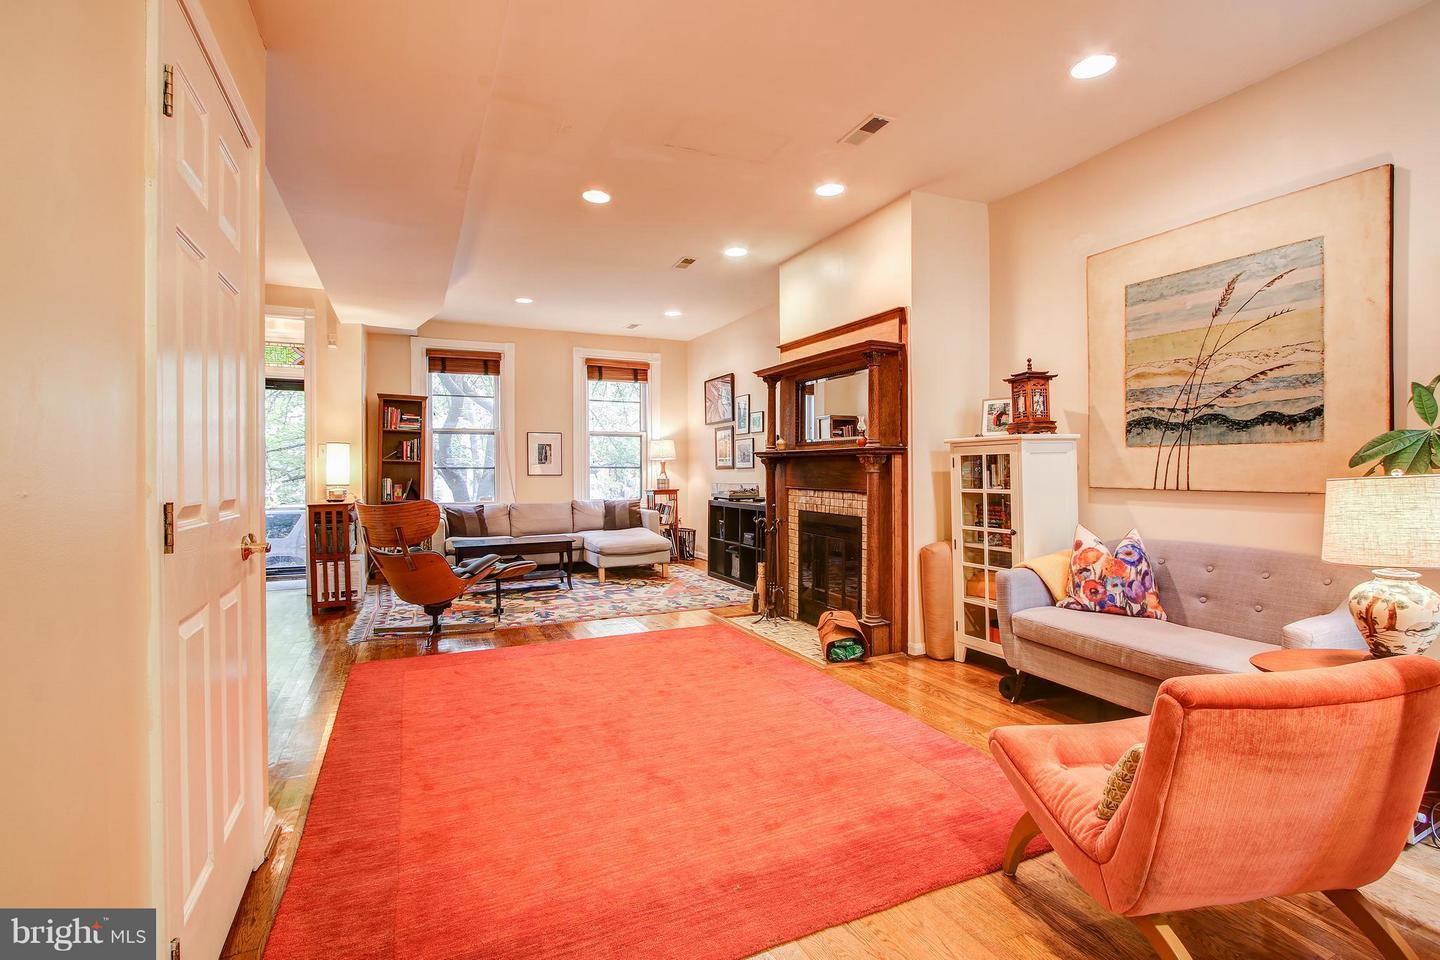 Single Family for Sale at 515 10th St SE Washington, District Of Columbia 20003 United States